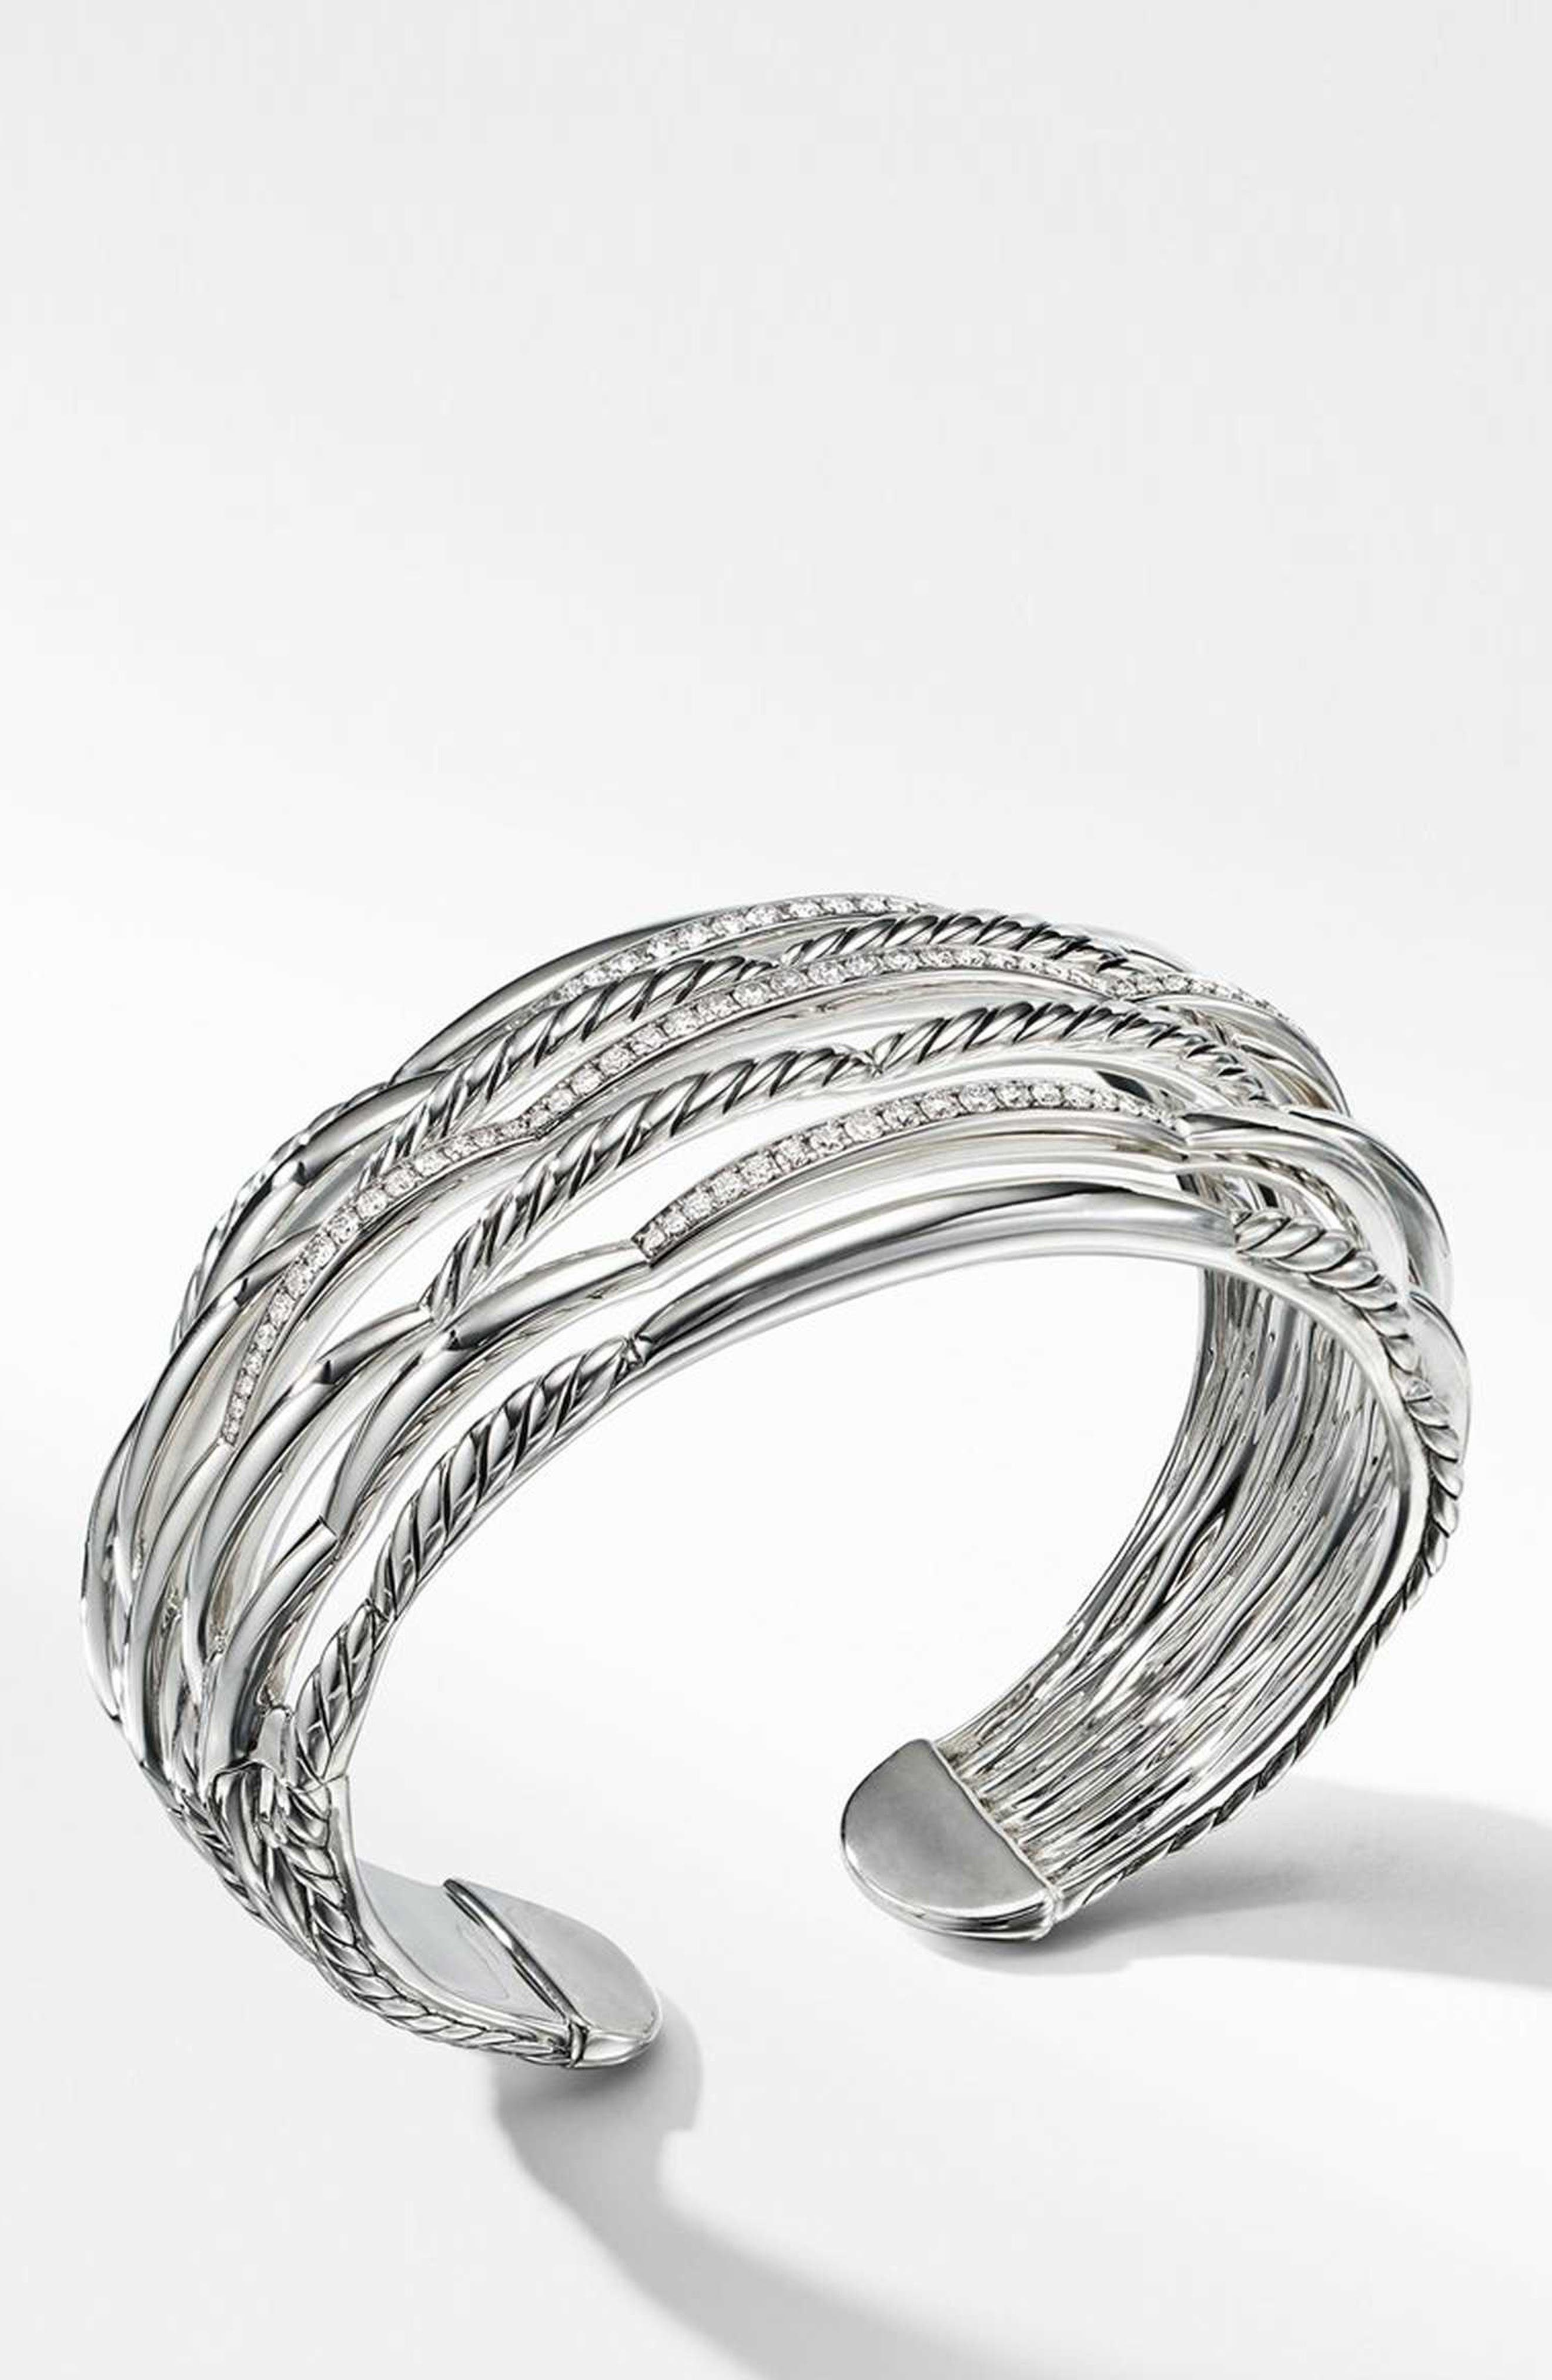 Wide Woven Cuff Bracelet with Diamonds,                             Alternate thumbnail 2, color,                             STERLING SILVER/ DIAMOND